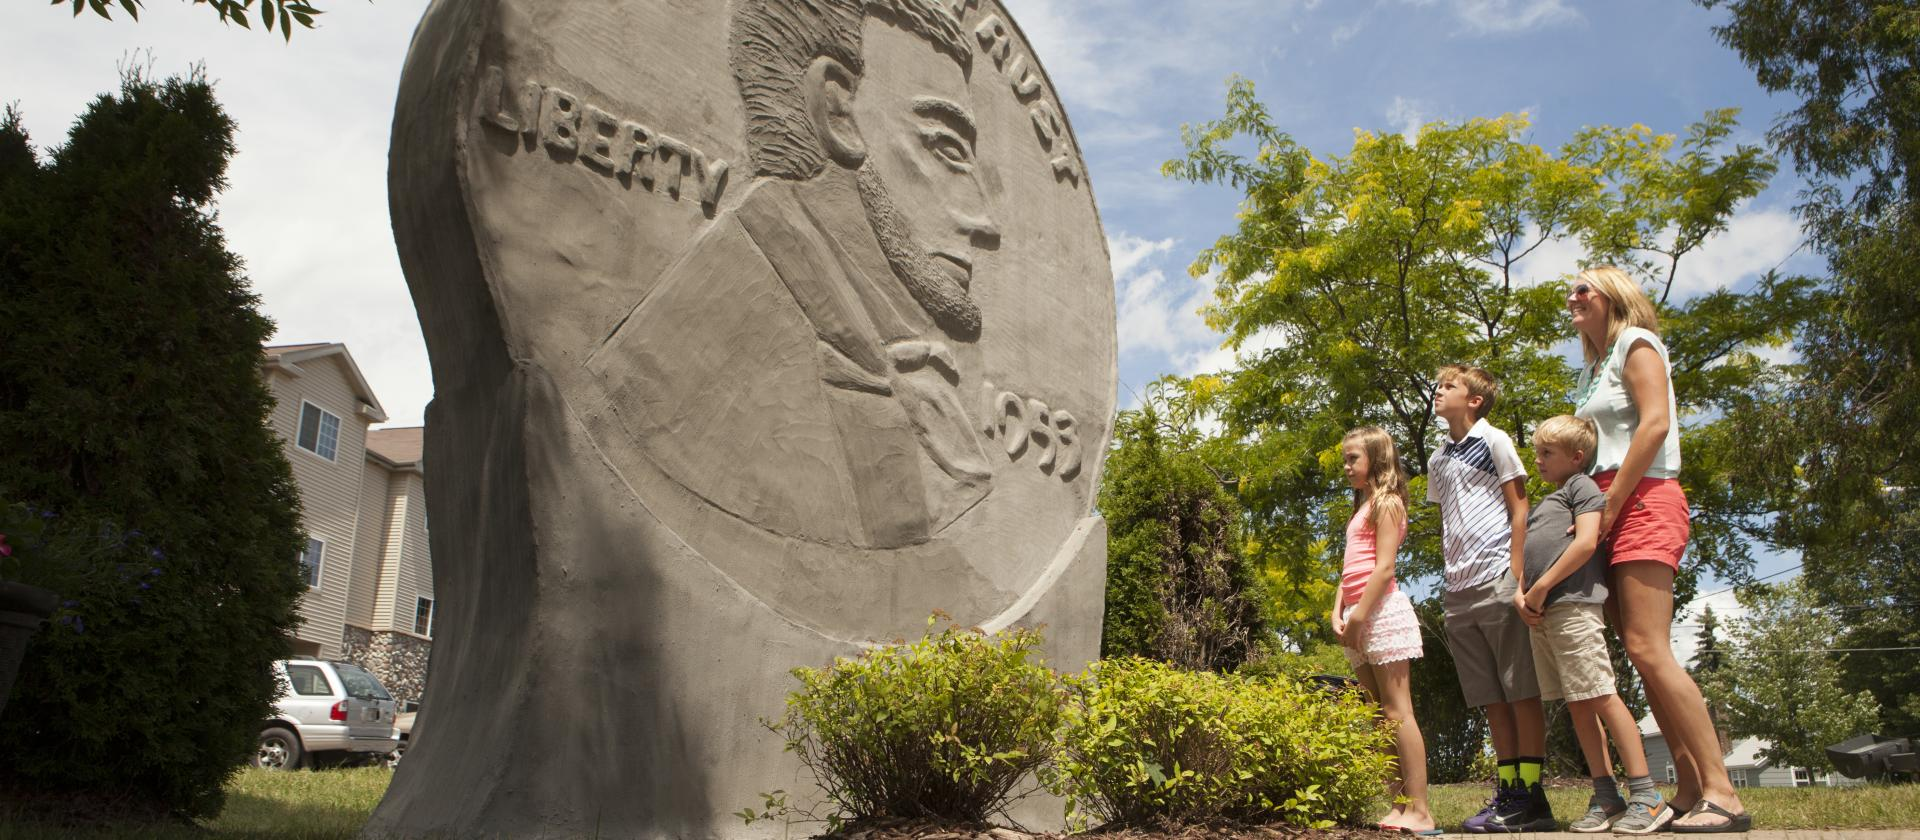 penny statue